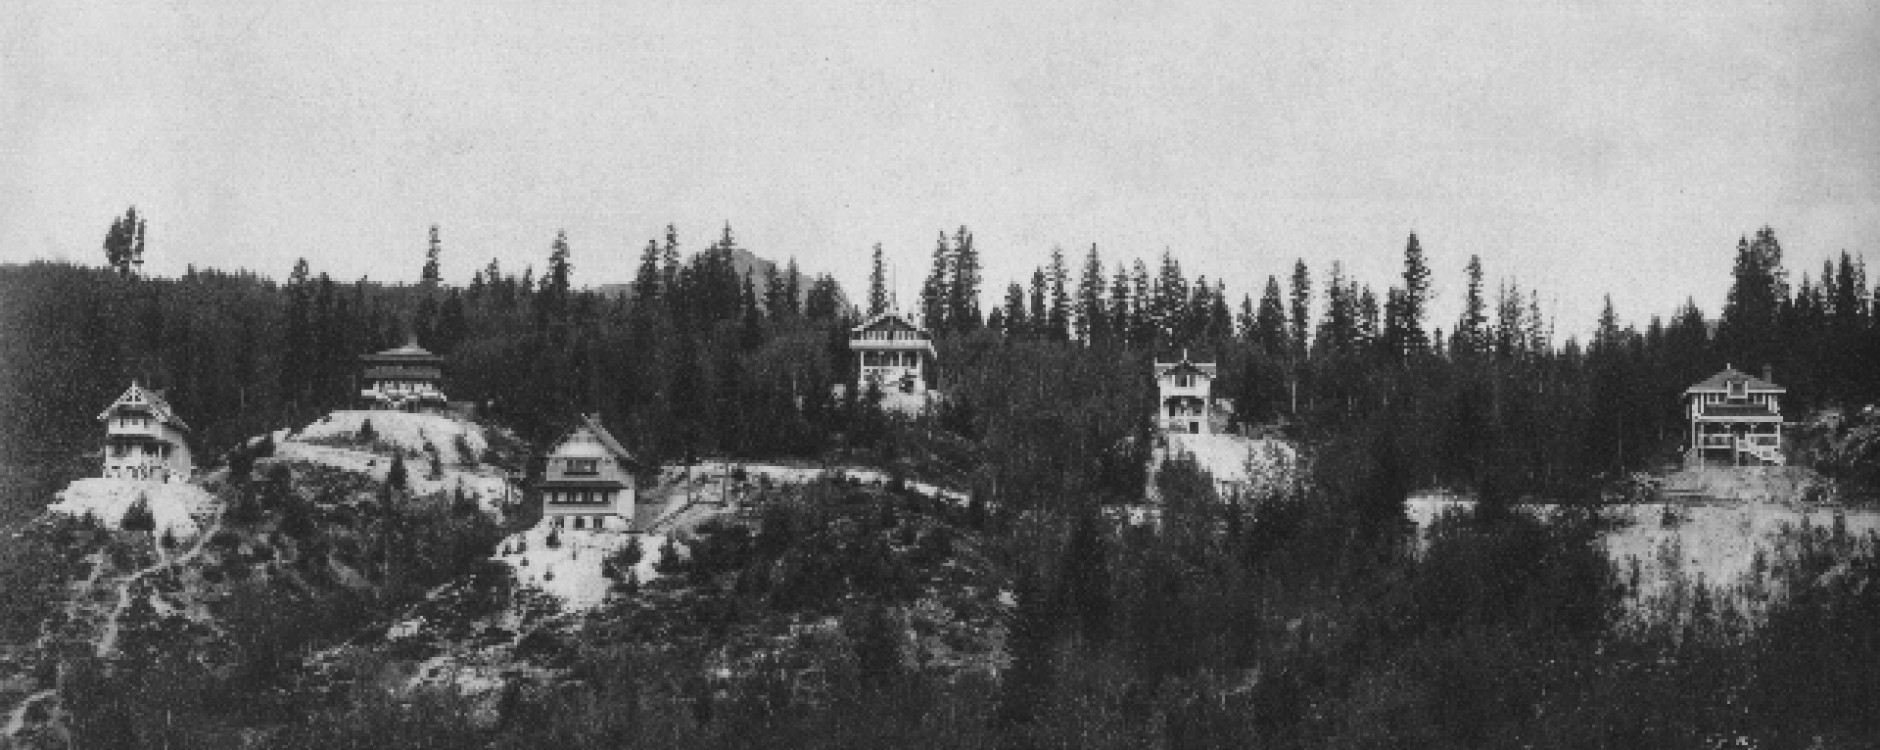 Golden Bc In The Canadian Rocky Mountains History And Mountain Culture